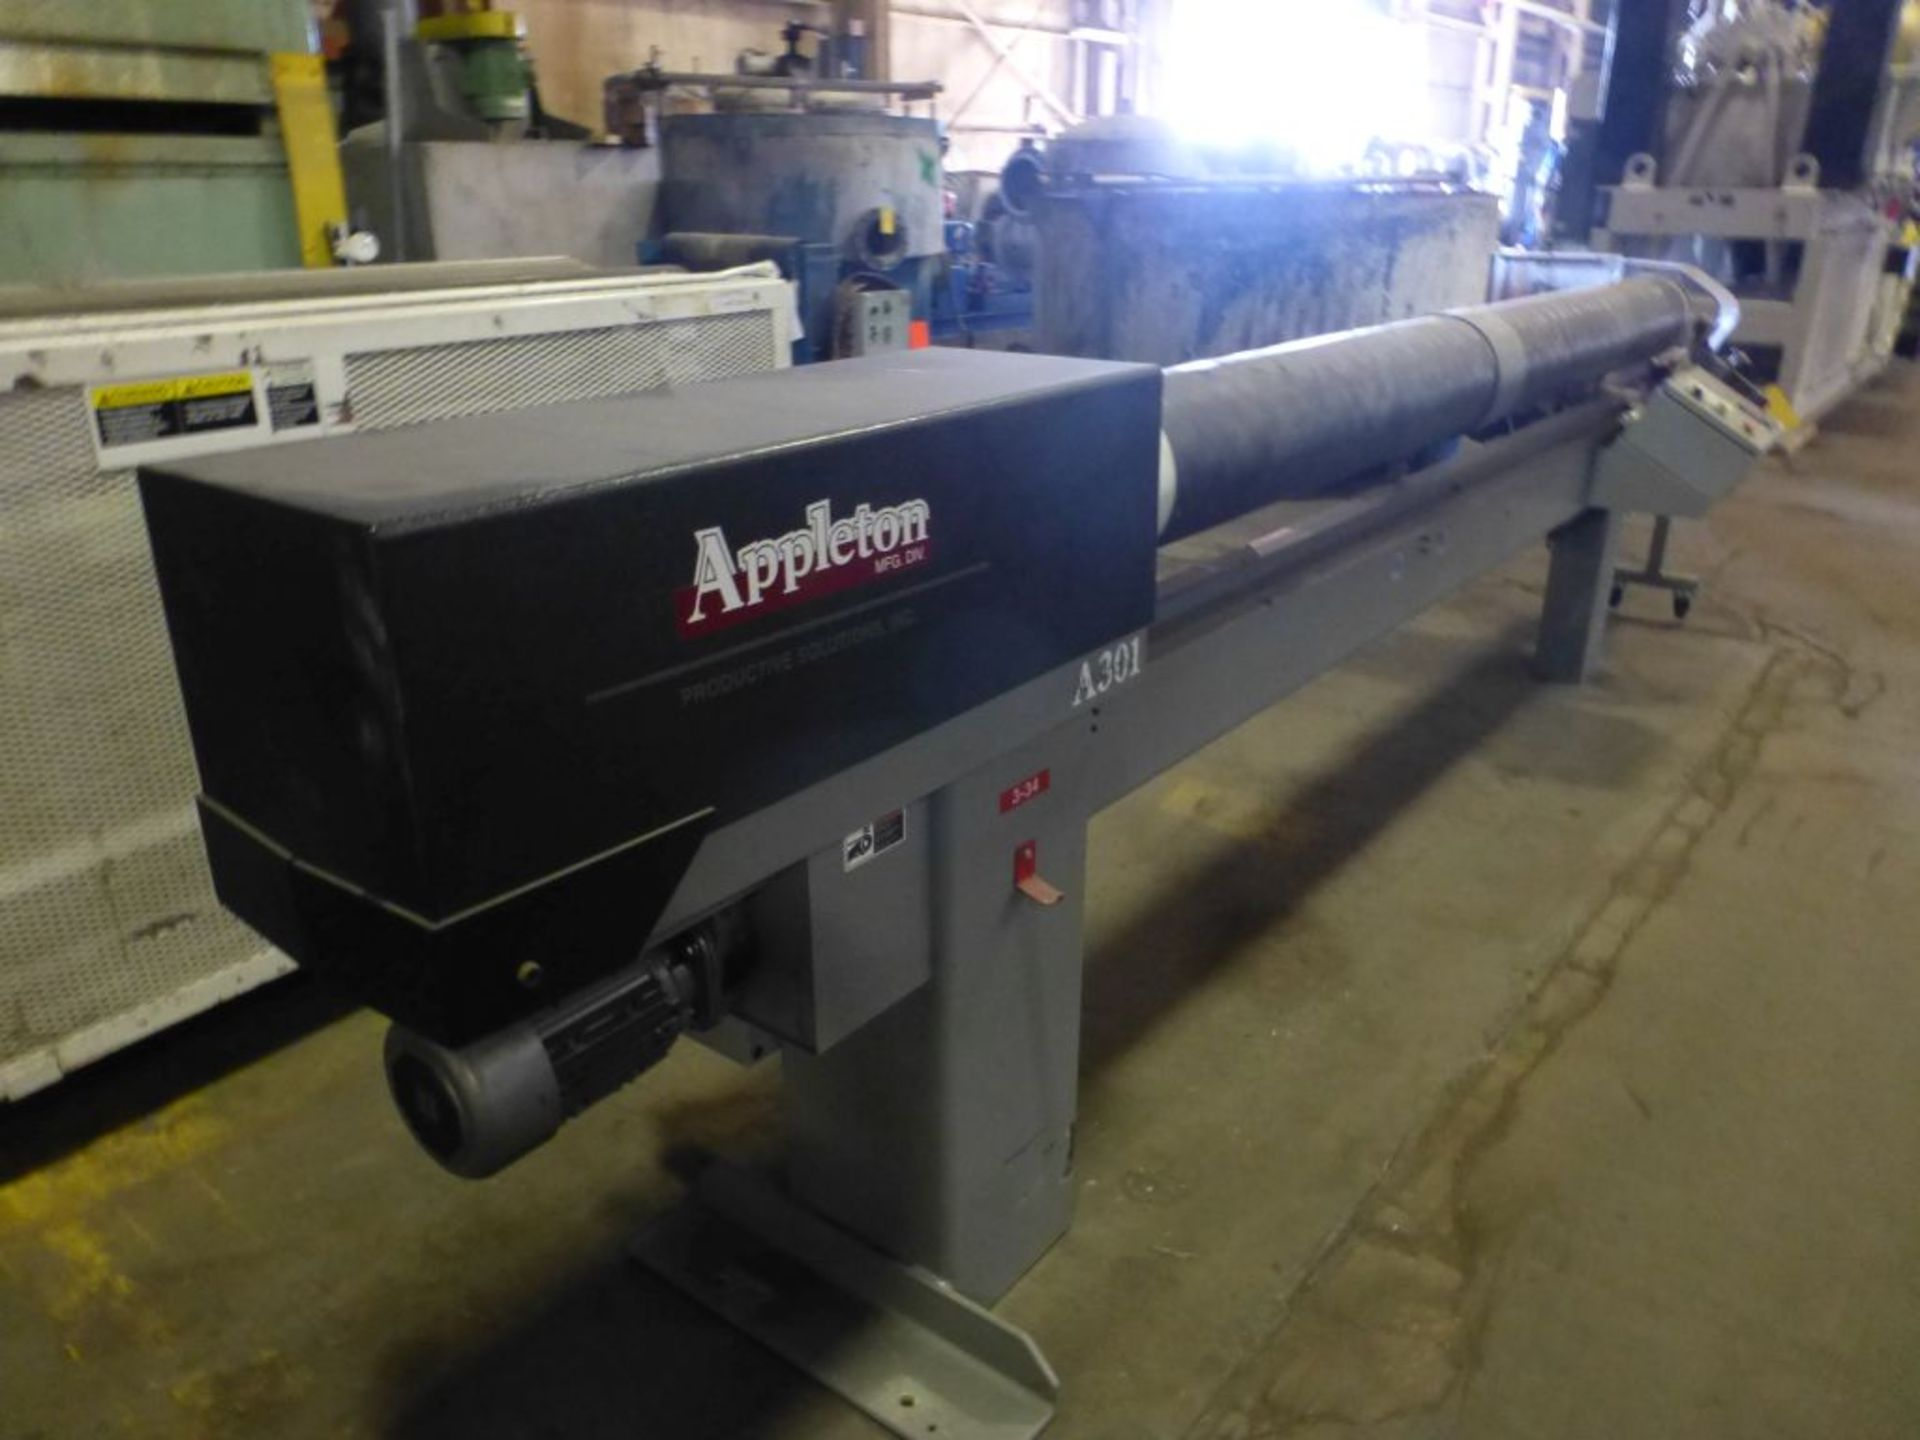 Appleton Automatic Core Cutter | Model No. A301; 2 HP; 460V; 3PH; Mfg: 2010 - Image 2 of 19